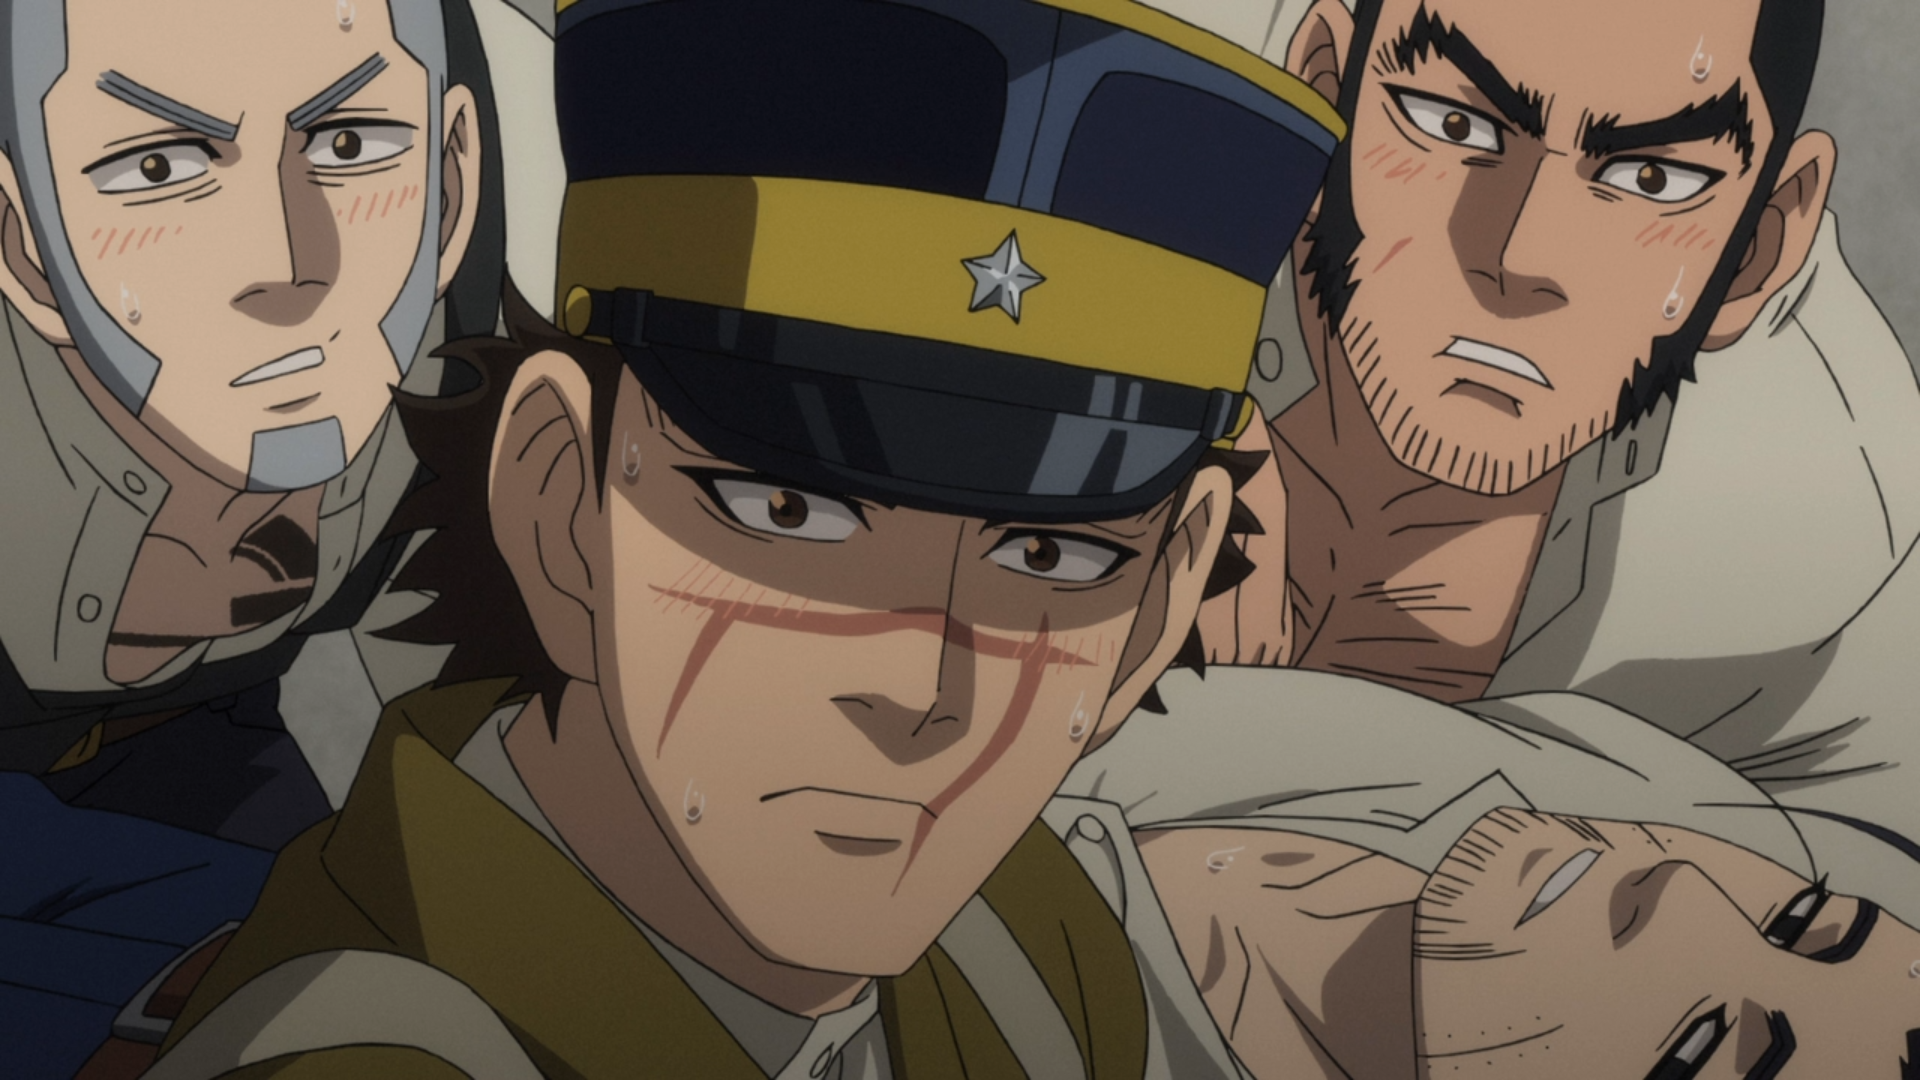 Shiraishi, Sugimoto, Tanigaki, and Ogata are all hot and bothered after consuming a meal of otter stew in a scene from Episode 20 of the Golden Kamuy TV anime.